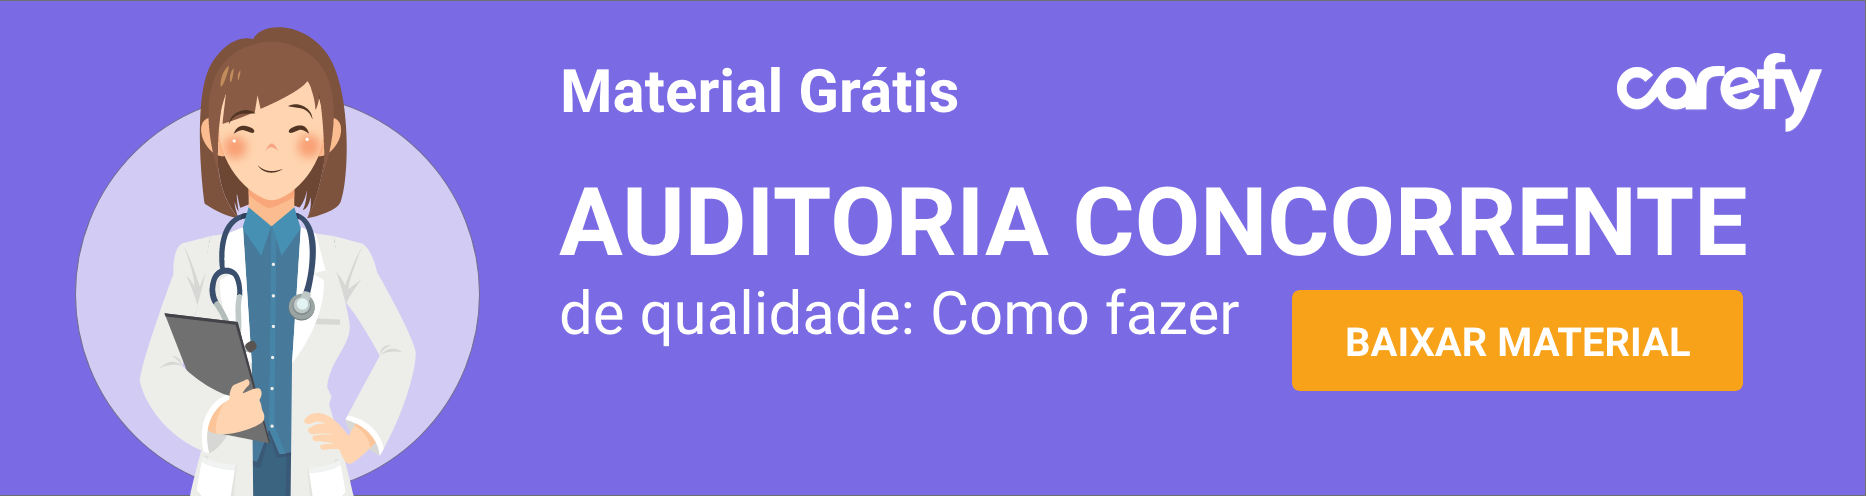 auditoria concorrente